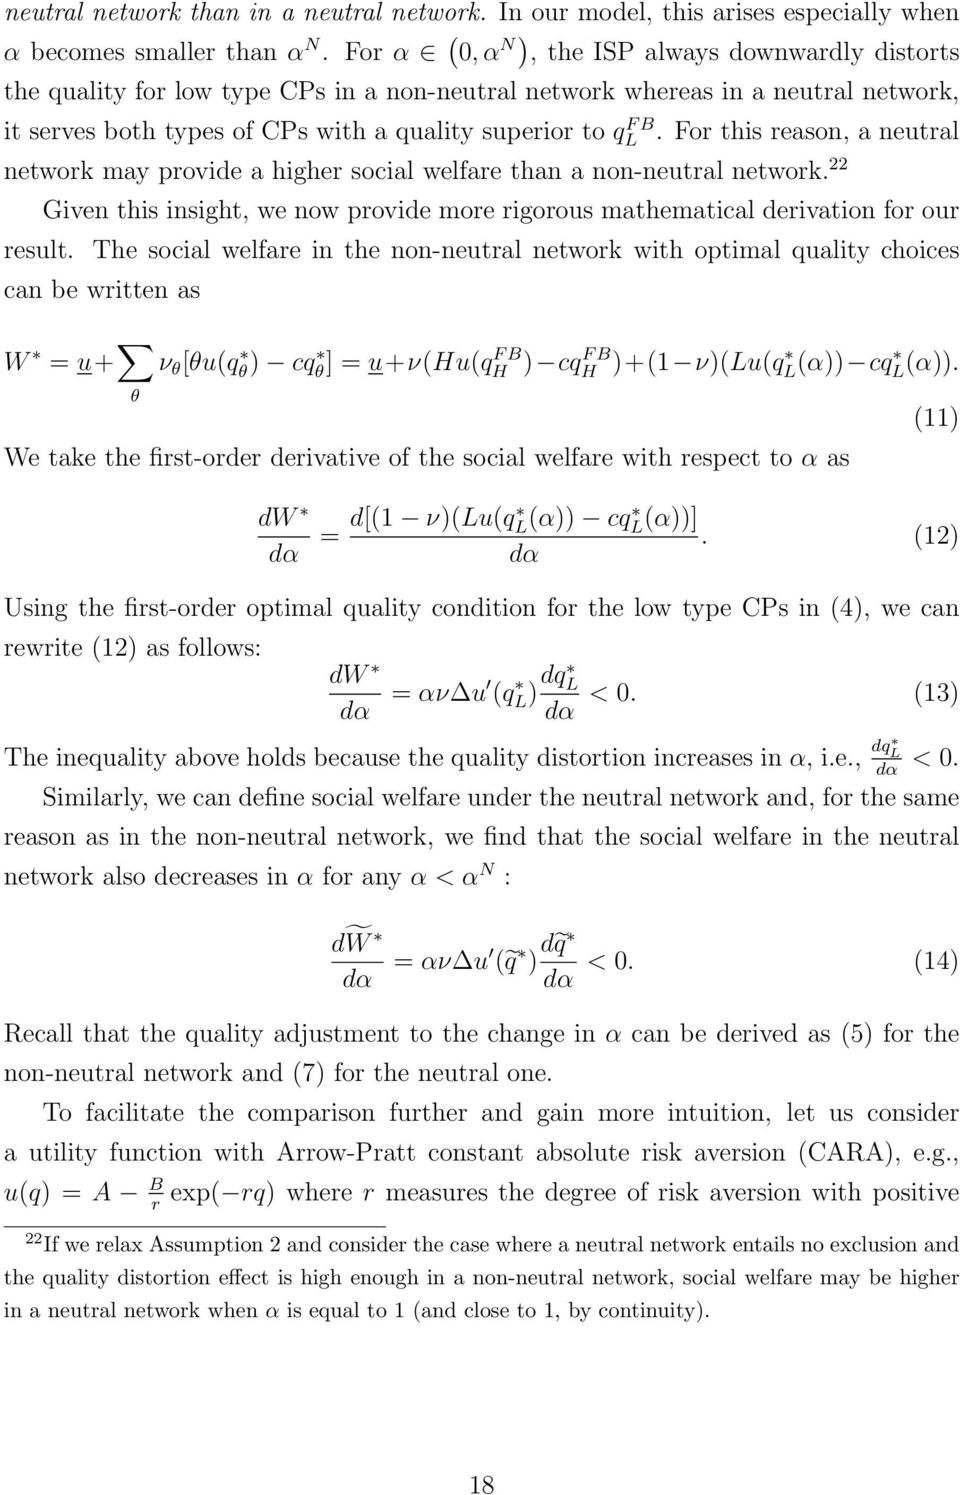 For this reason, a neutral network may provide a higher social welfare than a non-neutral network. 22 Given this insight, we now provide more rigorous mathematical derivation for our result.